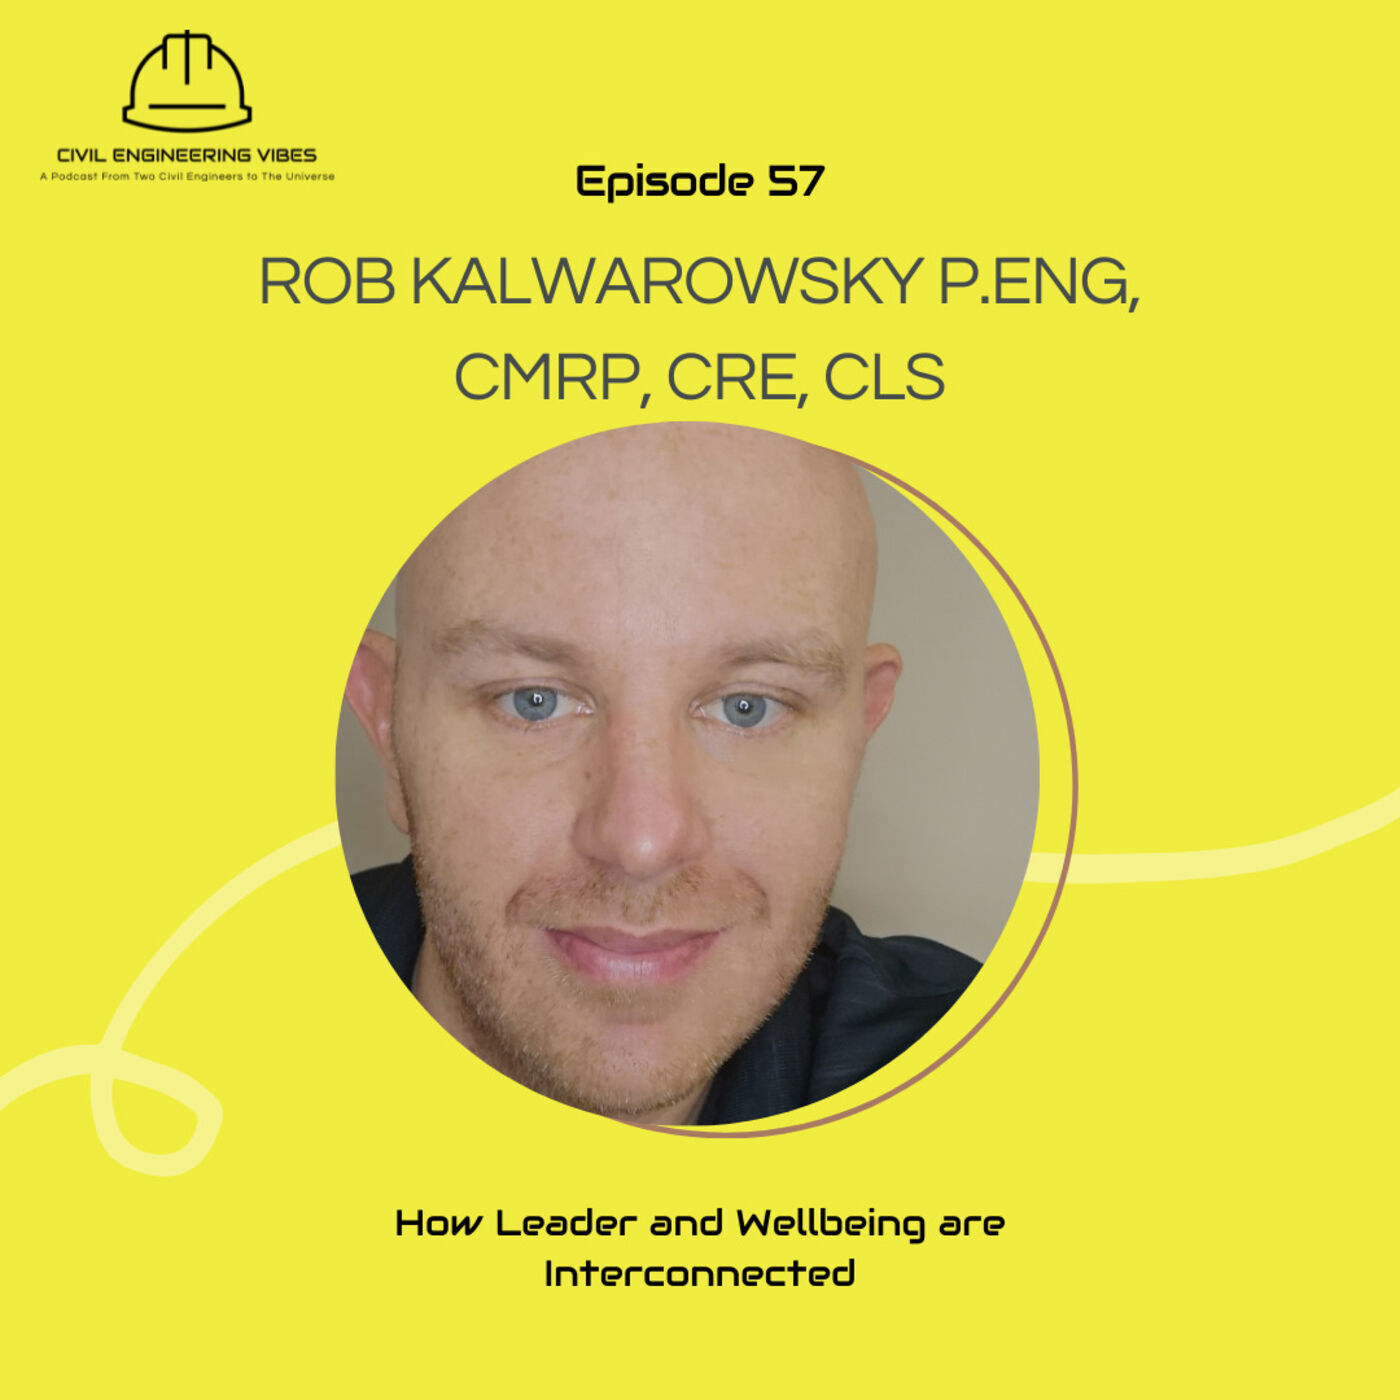 How Leader and Wellbeing are Interconnected with Rob Kalwarowsky P.Eng, CMRP, CRE, CLS